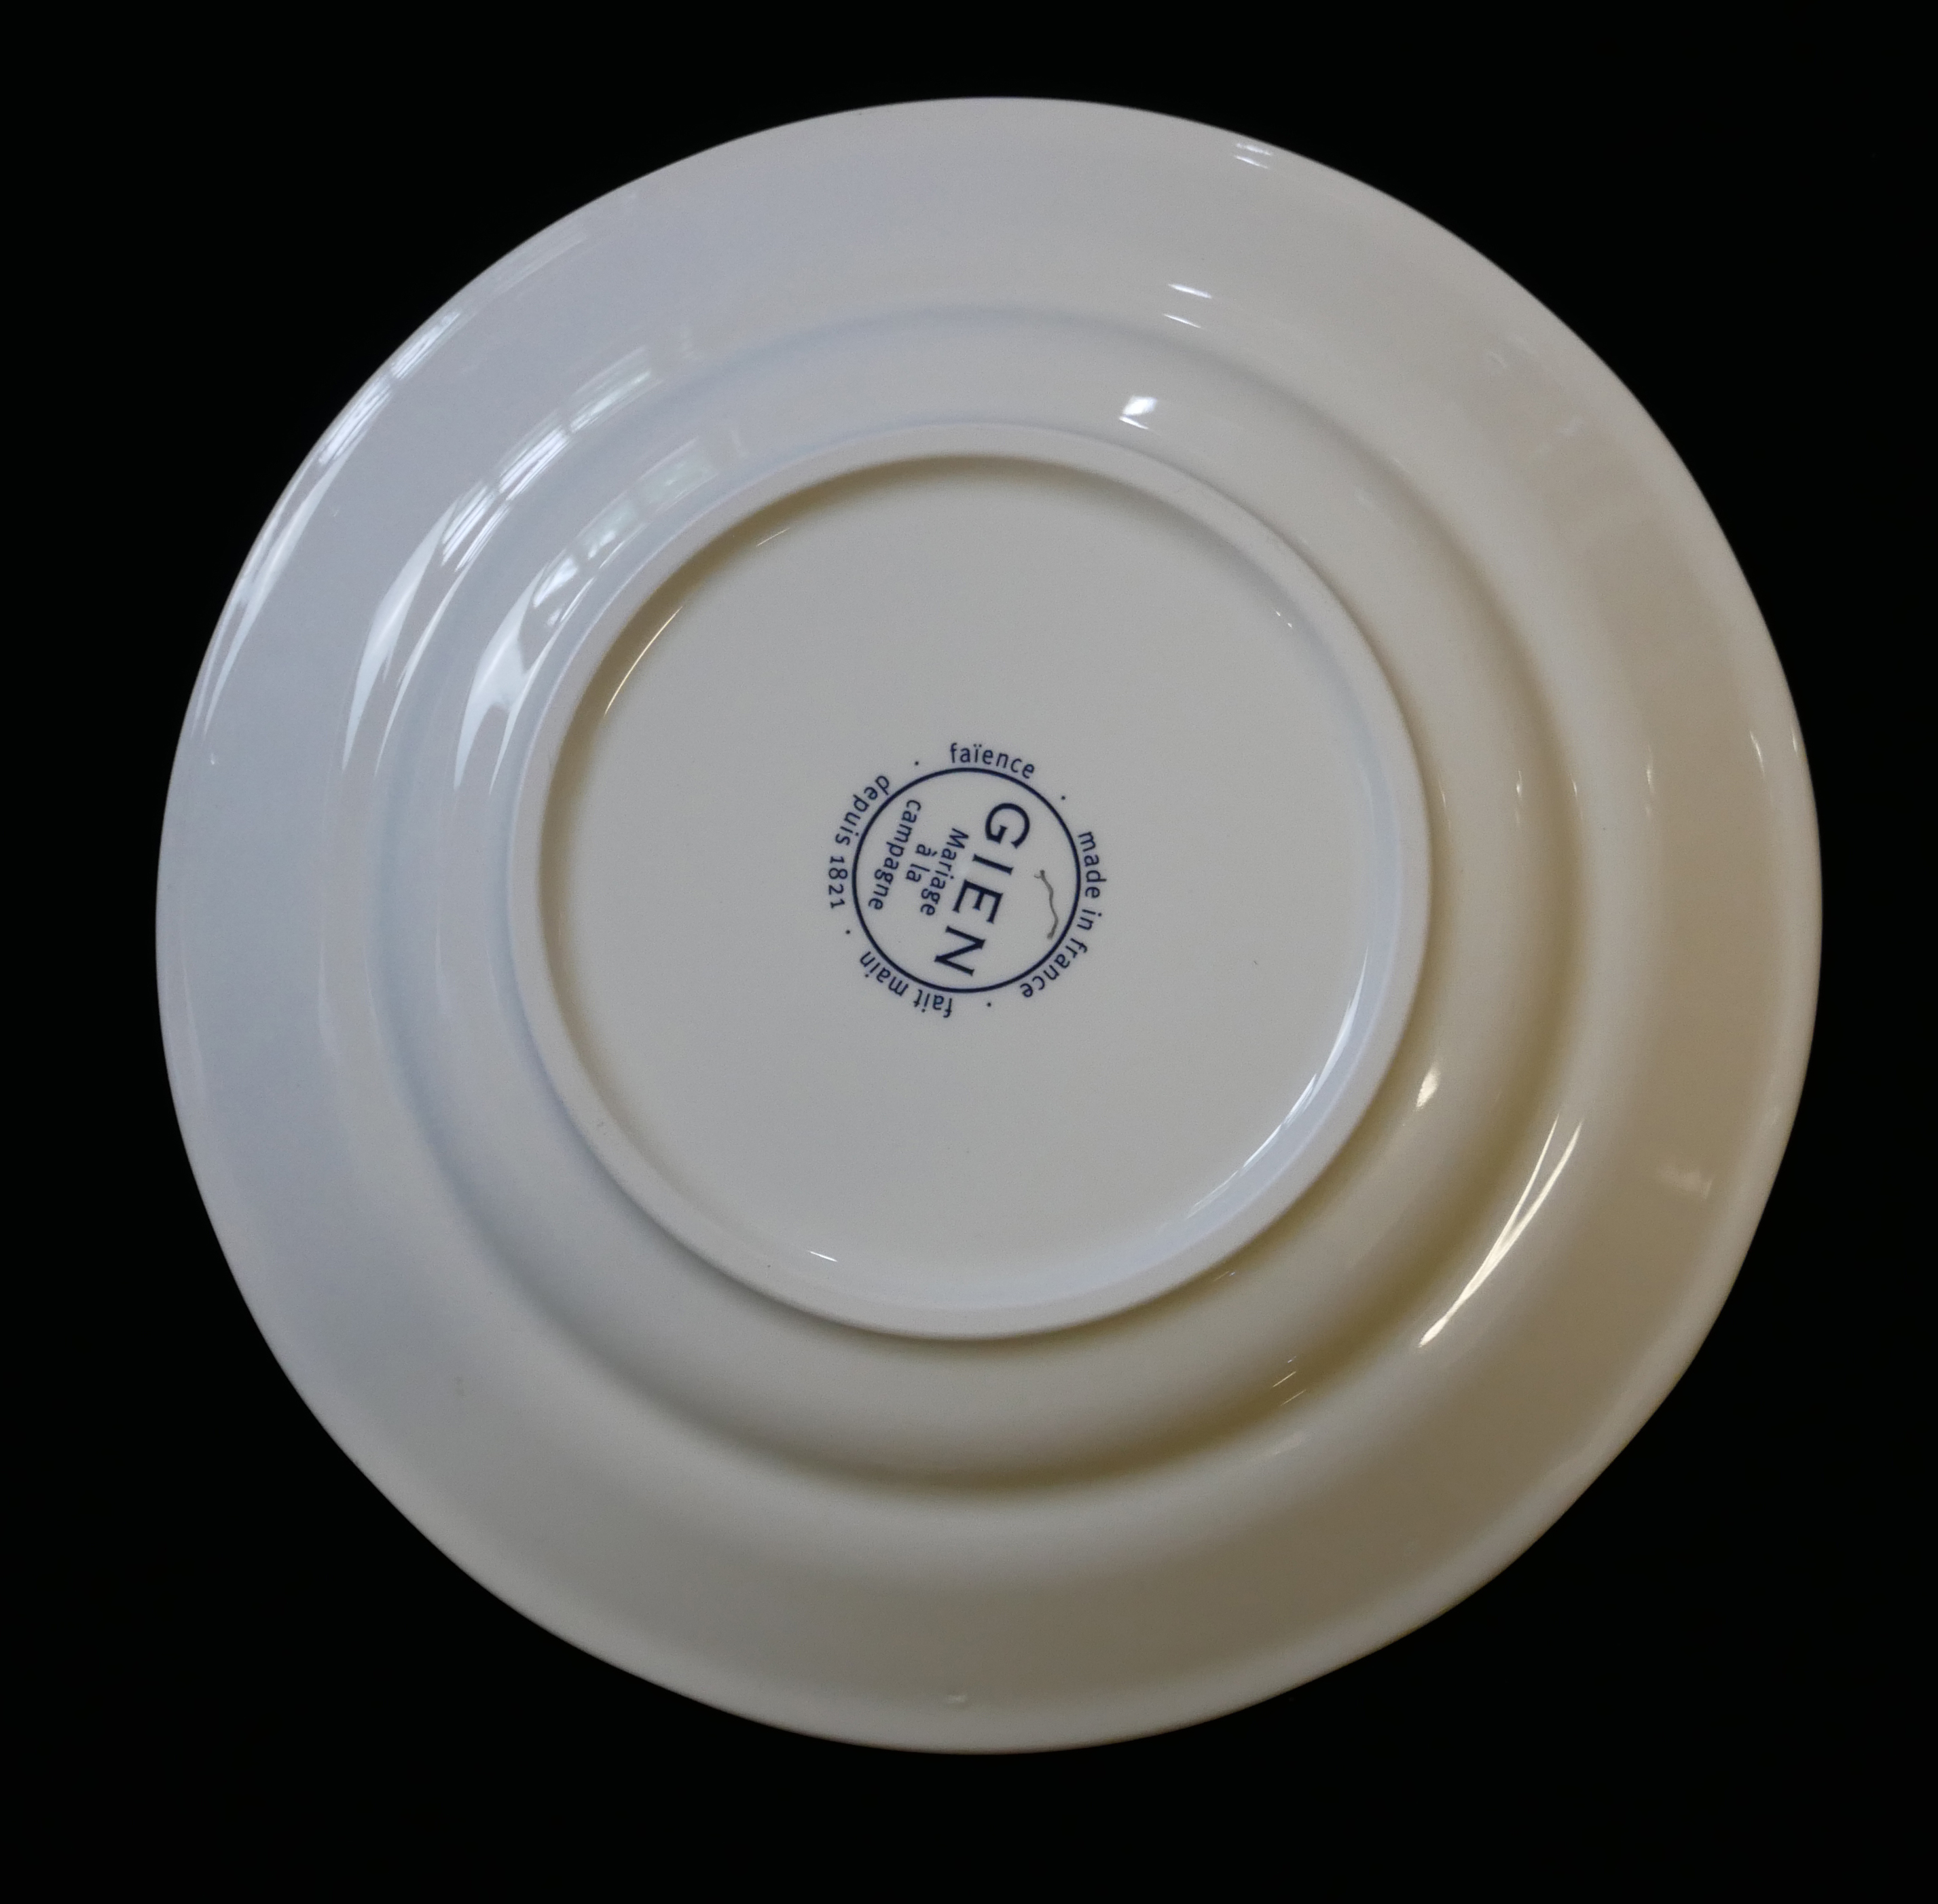 GIEN FACTORY, MARRIAGE À LA CAMPAGNE ROMANTIC PATTERN, A SET OF SIX MODERN FRENCH FAIENCE PLATES - Image 3 of 3